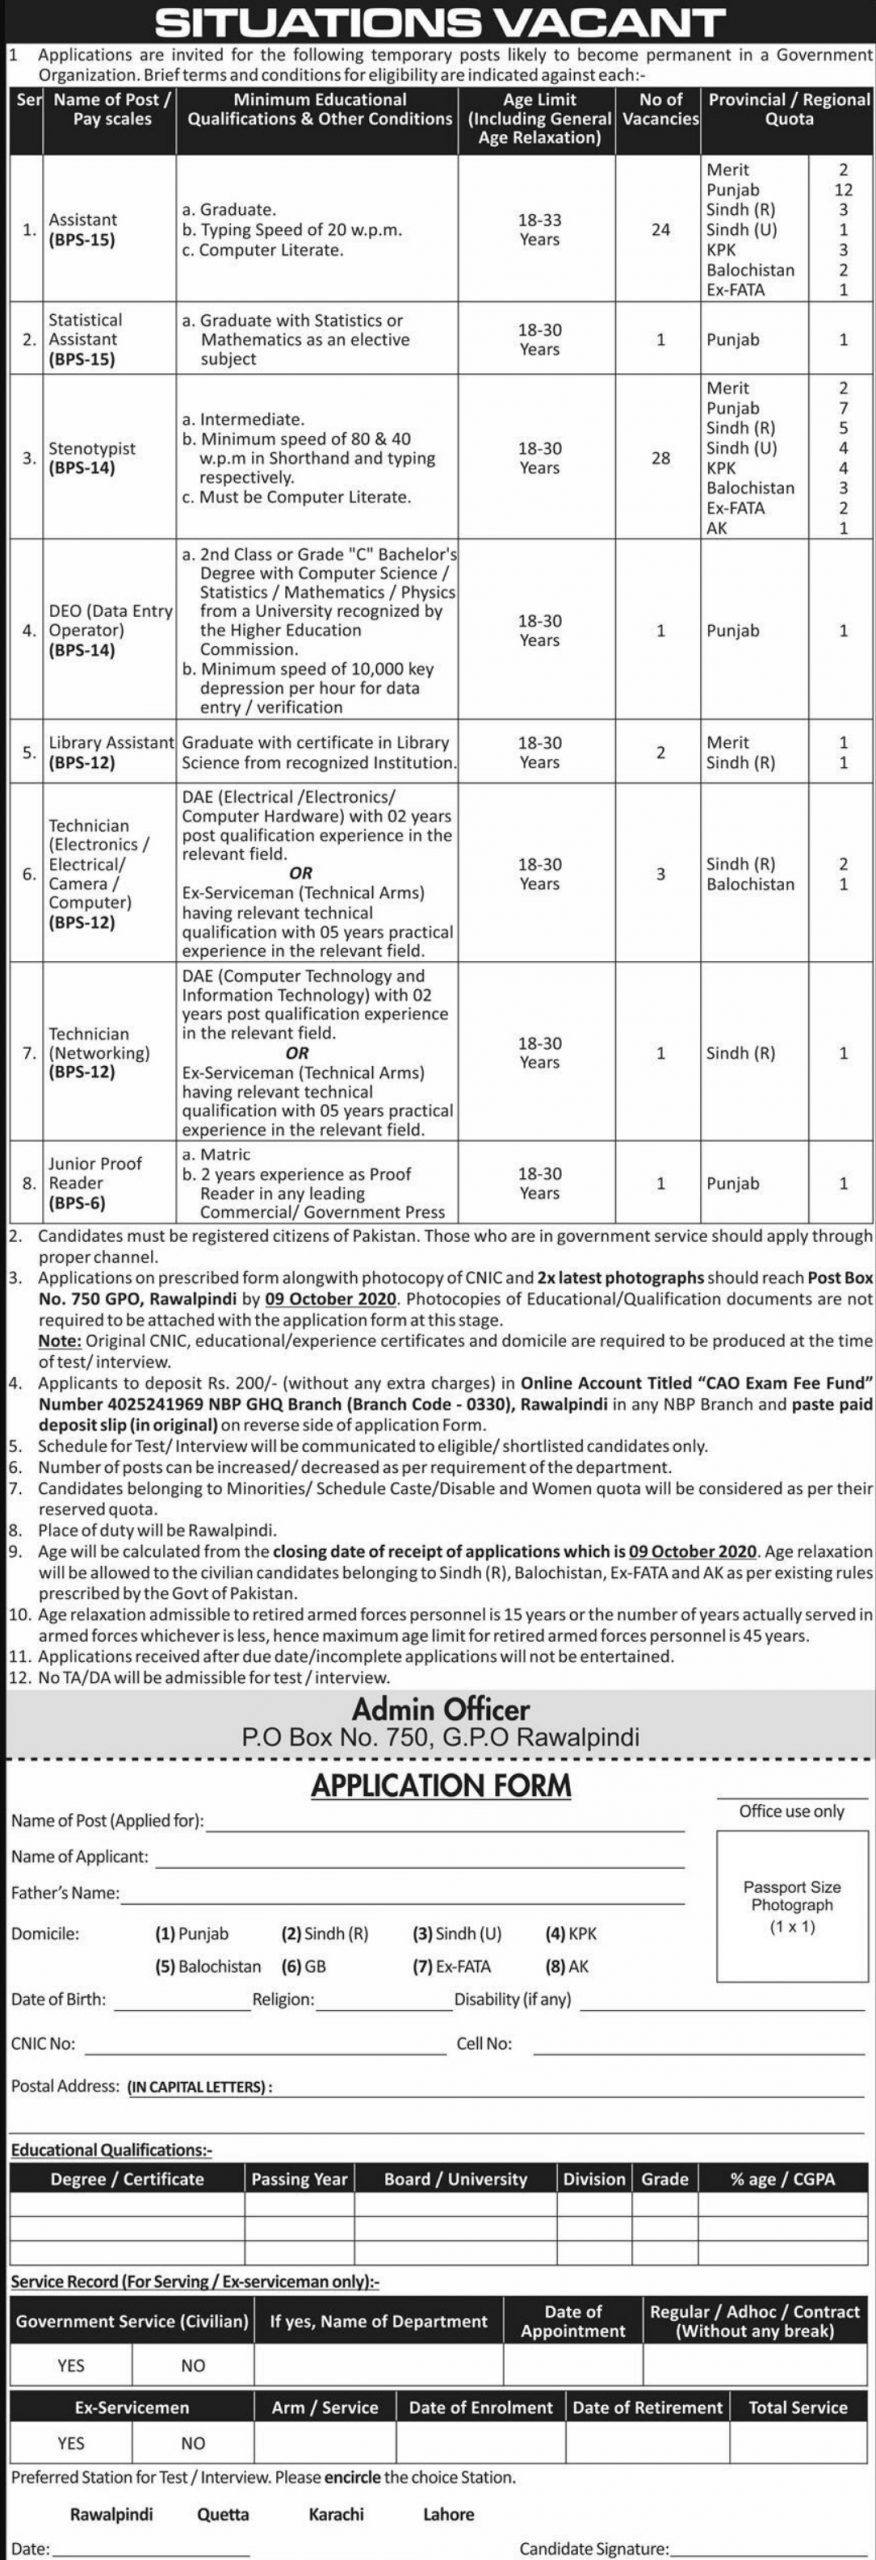 Public Sector Organization P.O.Box 750 Rawalpindi Jobs September 2020